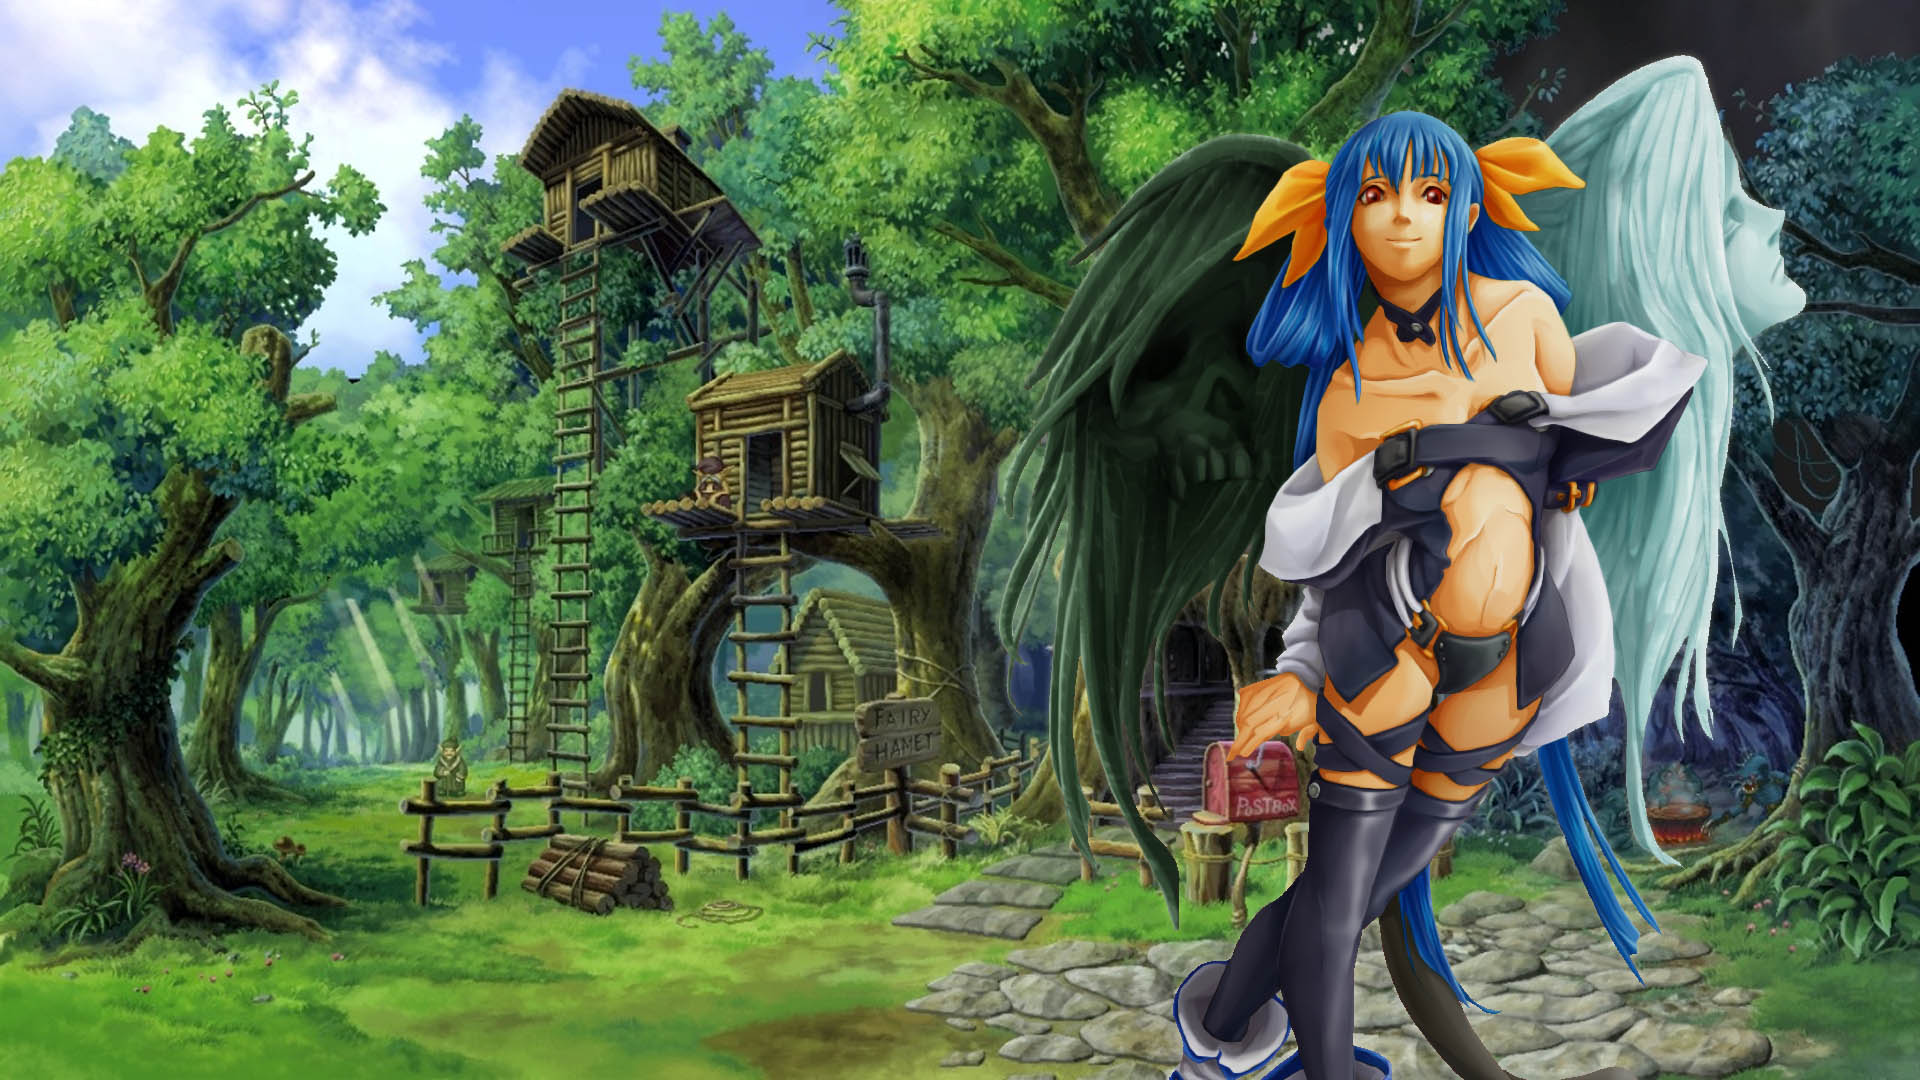 Guilty Gear: Dizzy Free